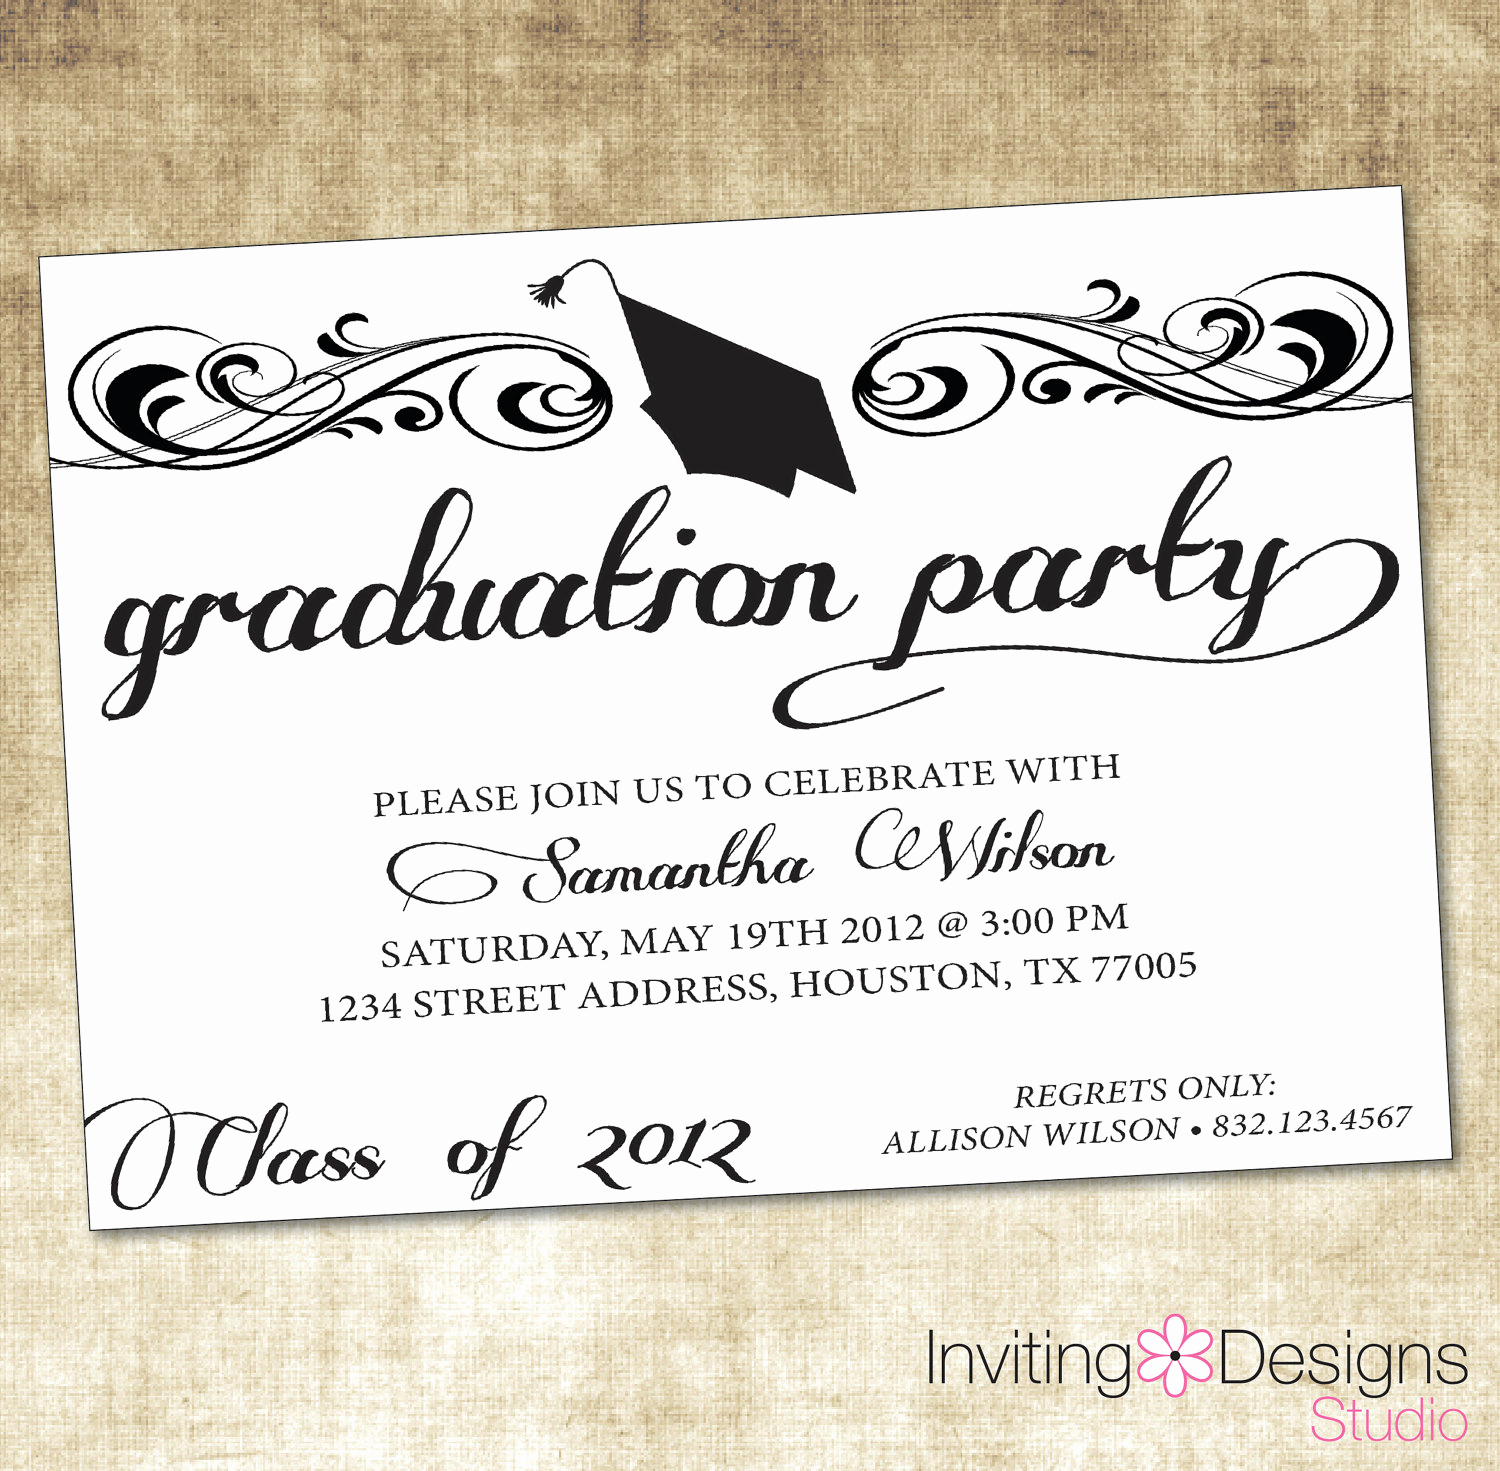 Graduation Party Invitation Templates Inspirational Quotes for Graduation Party Invitations Quotesgram